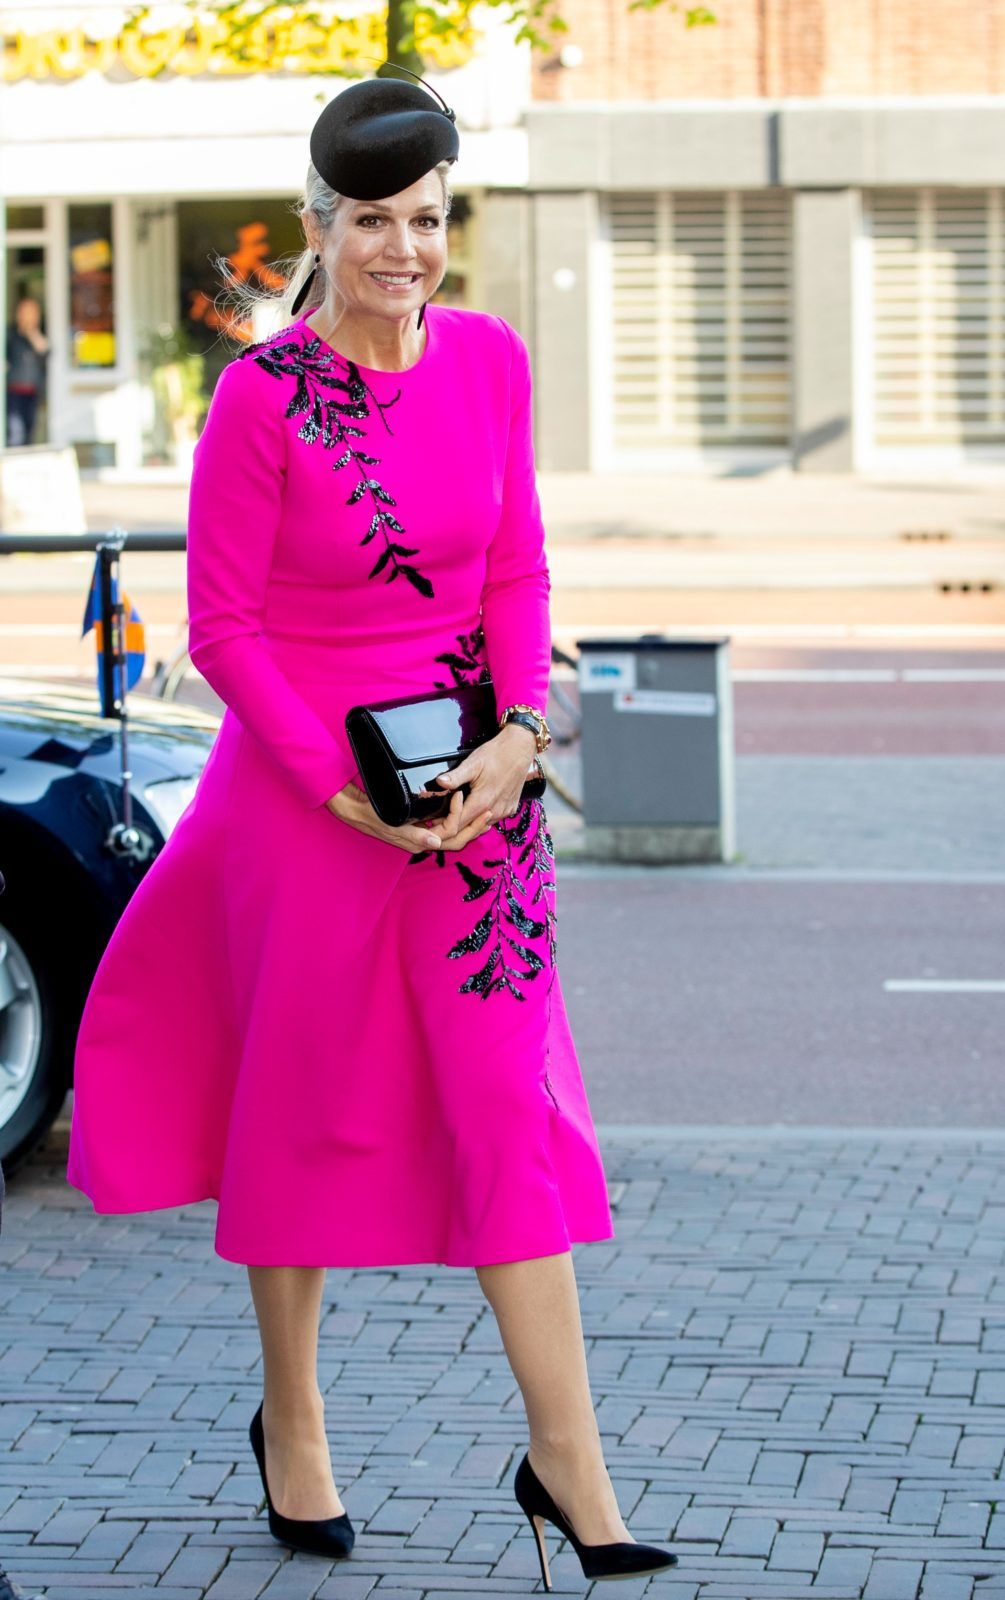 Queen Maxima was all smiles as stepped out in a colourful dress for an engagementin Utrecht on Thursday. Source: Getty